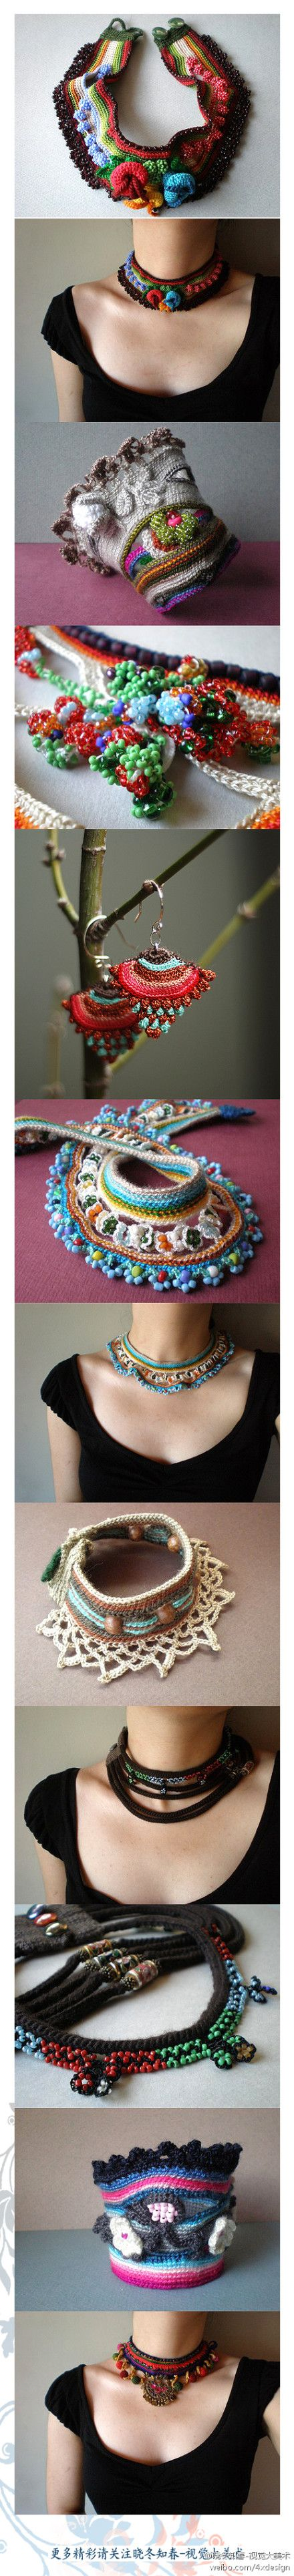 gorgeous crocheted cuffs, necklaces